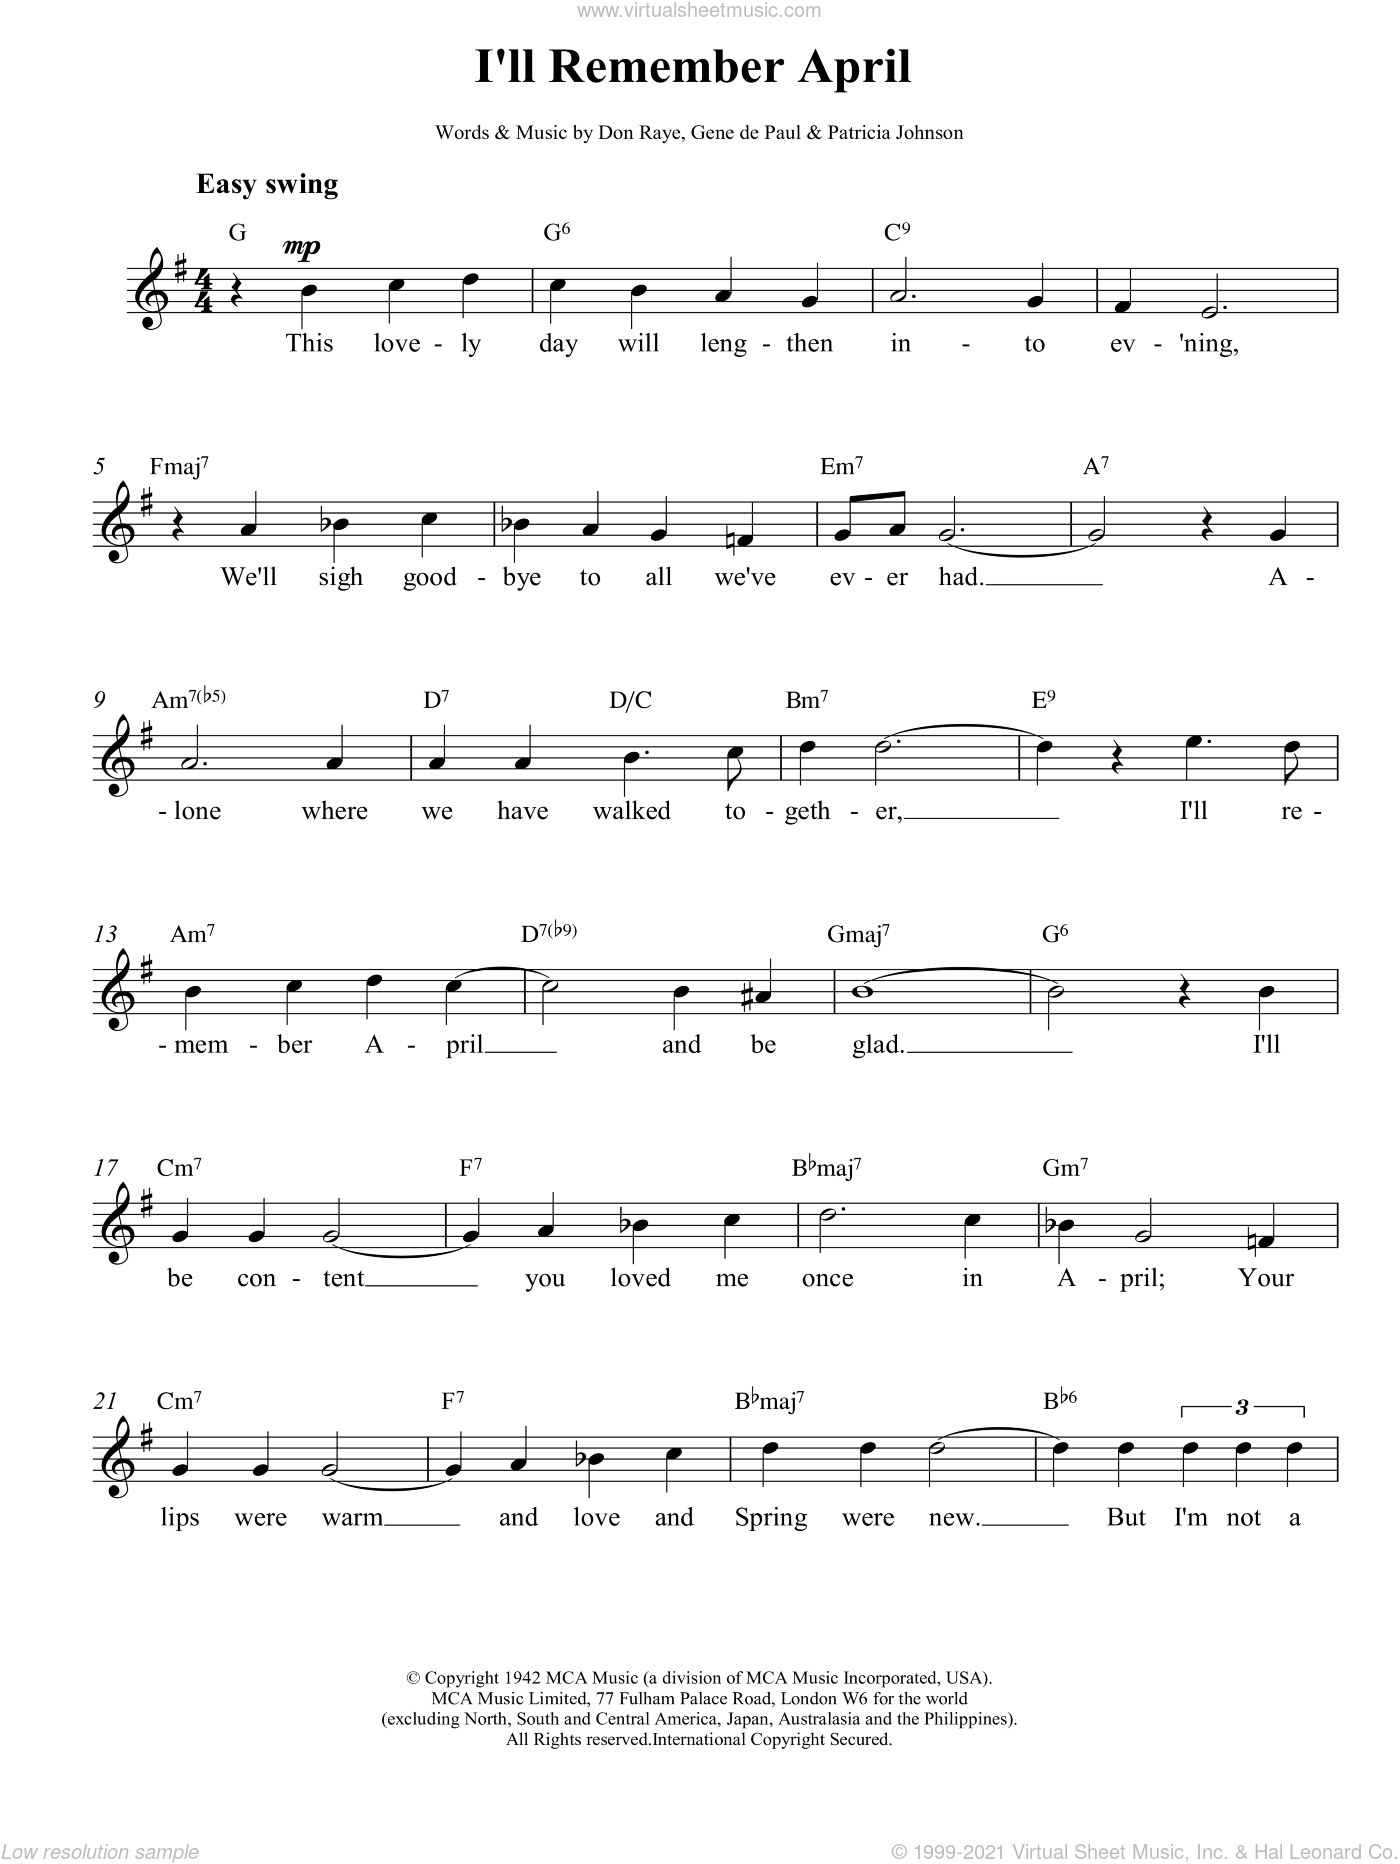 I'll Remember April sheet music for voice and other instruments (fake book) by Charlie Parker, Lee Konitz, DE PAUL, Don Raye and JOHNSON, intermediate skill level